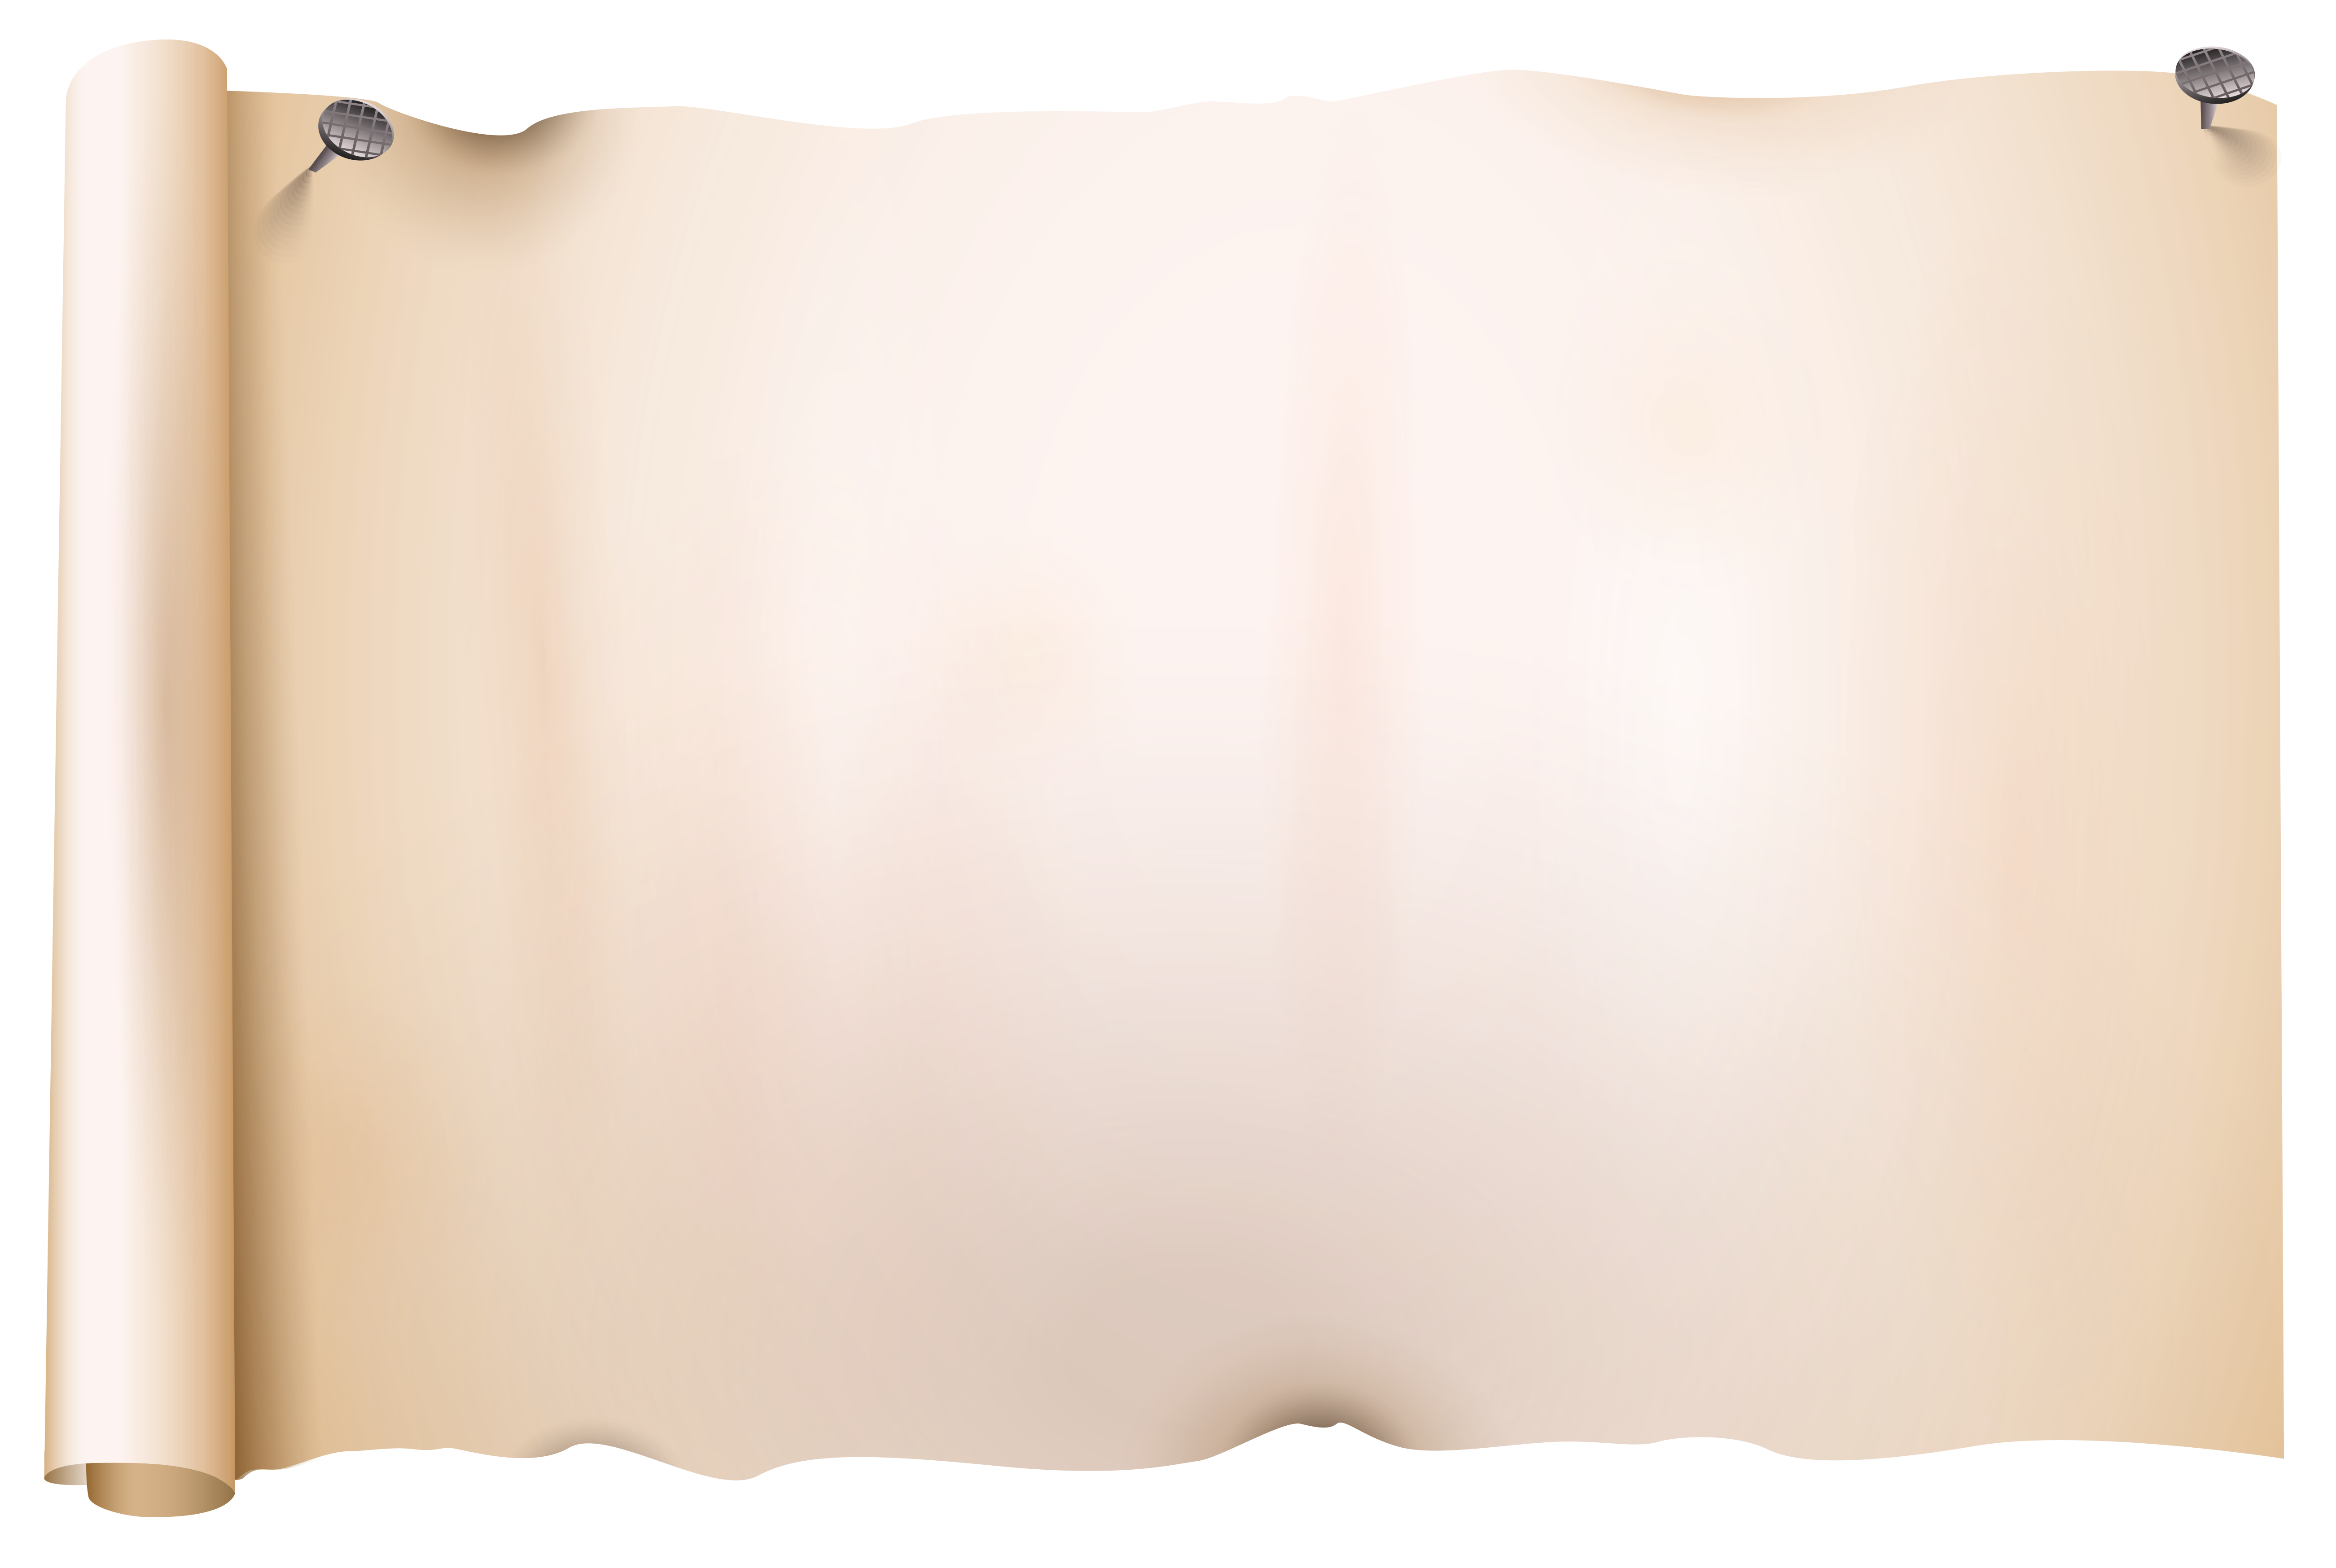 Paper clipart png. Old scroll image gallery